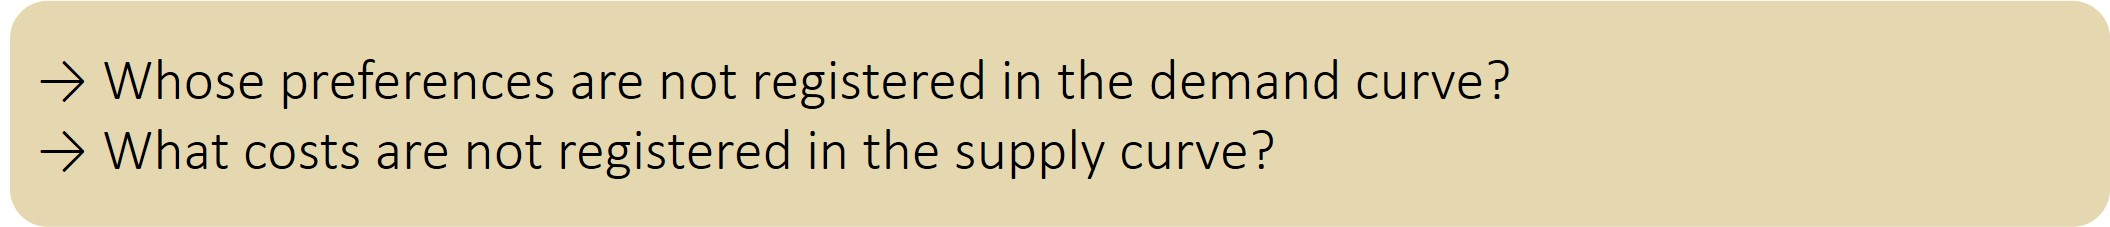 Whose preferences are not registered in the demand curve? What costs are not registered in the supply curve?